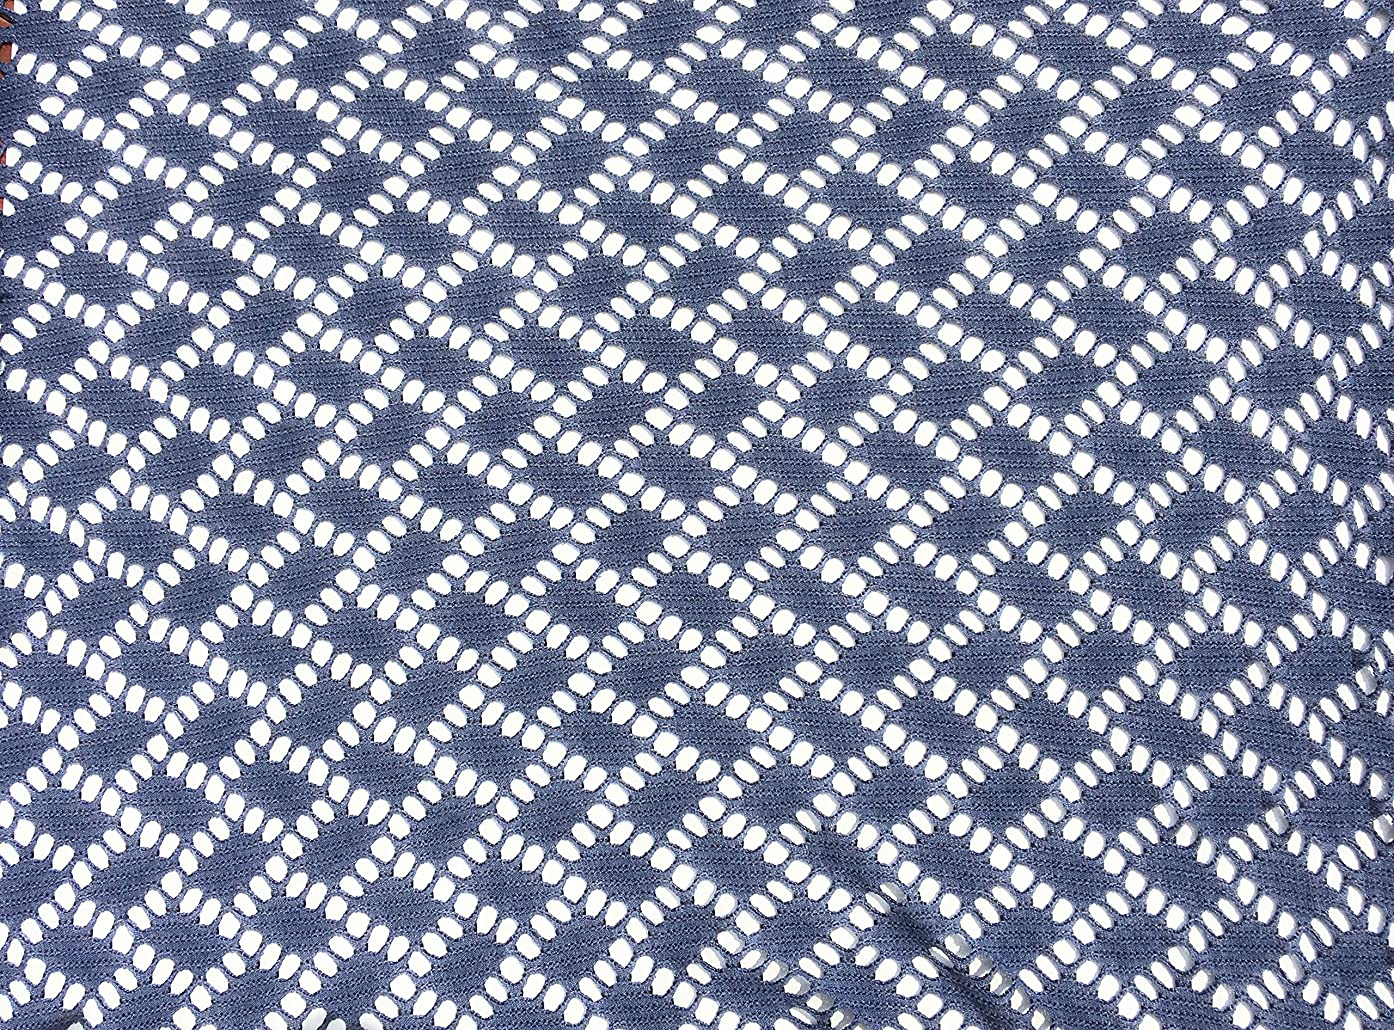 Cloudy BLUE Fabric open Airy Lace Design 58